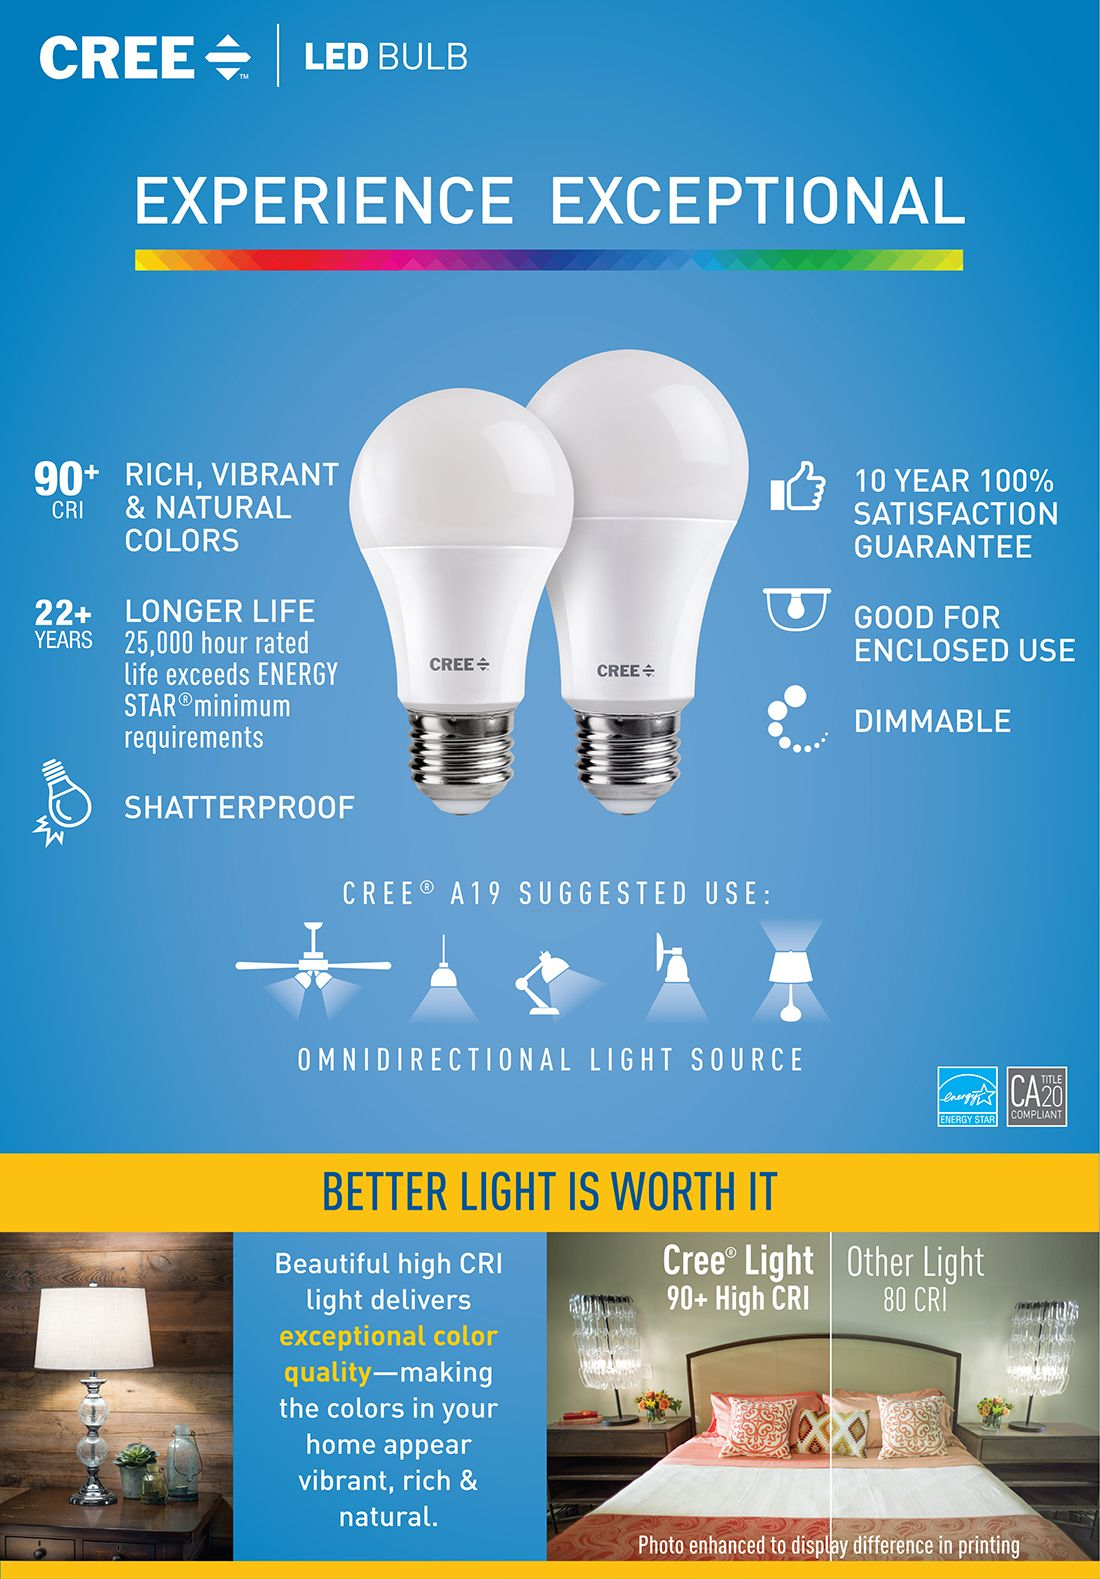 Difference Between Soft White And Daylight Bulbs : difference, between, white, daylight, bulbs, Equivalent, Daylight, (5000K), Dimmable, Exceptional, Light, Quality, (2-Pack)-TA19-08050MDFH25-12DE26-1-12, Depot, Bulb,, Energy, Efficient, Bulbs